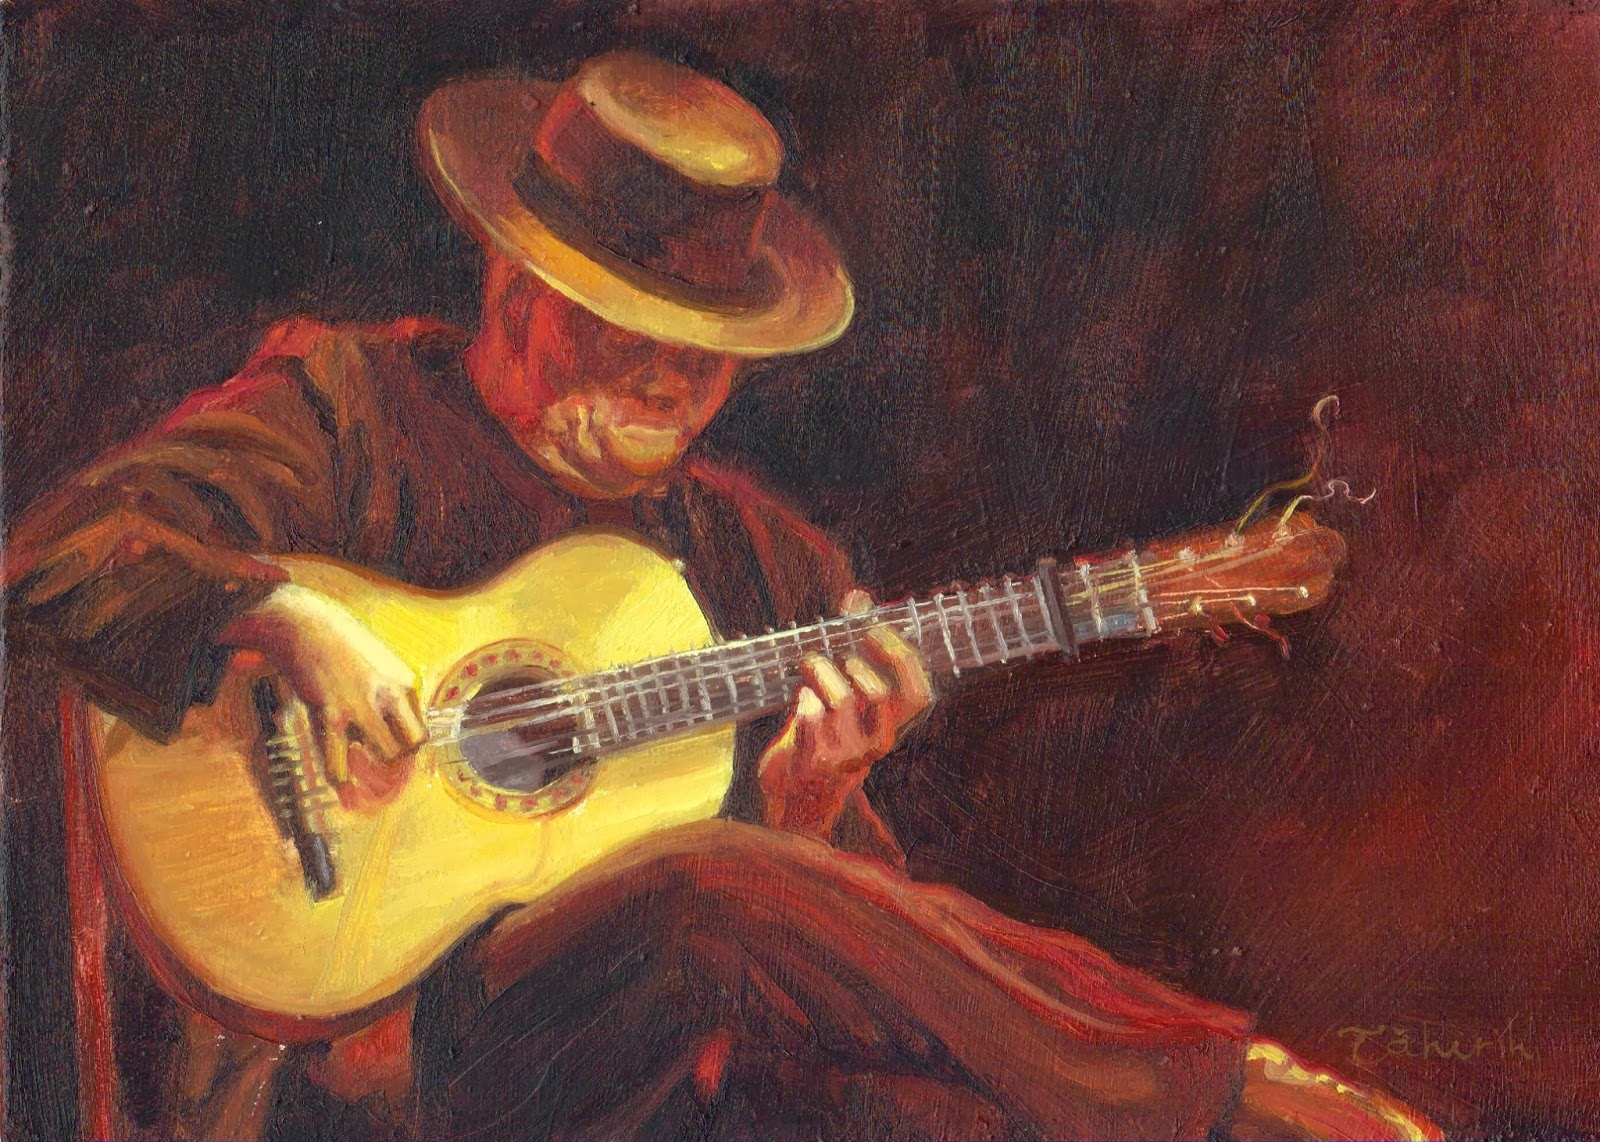 Guitarist Painting classical guitar paint...